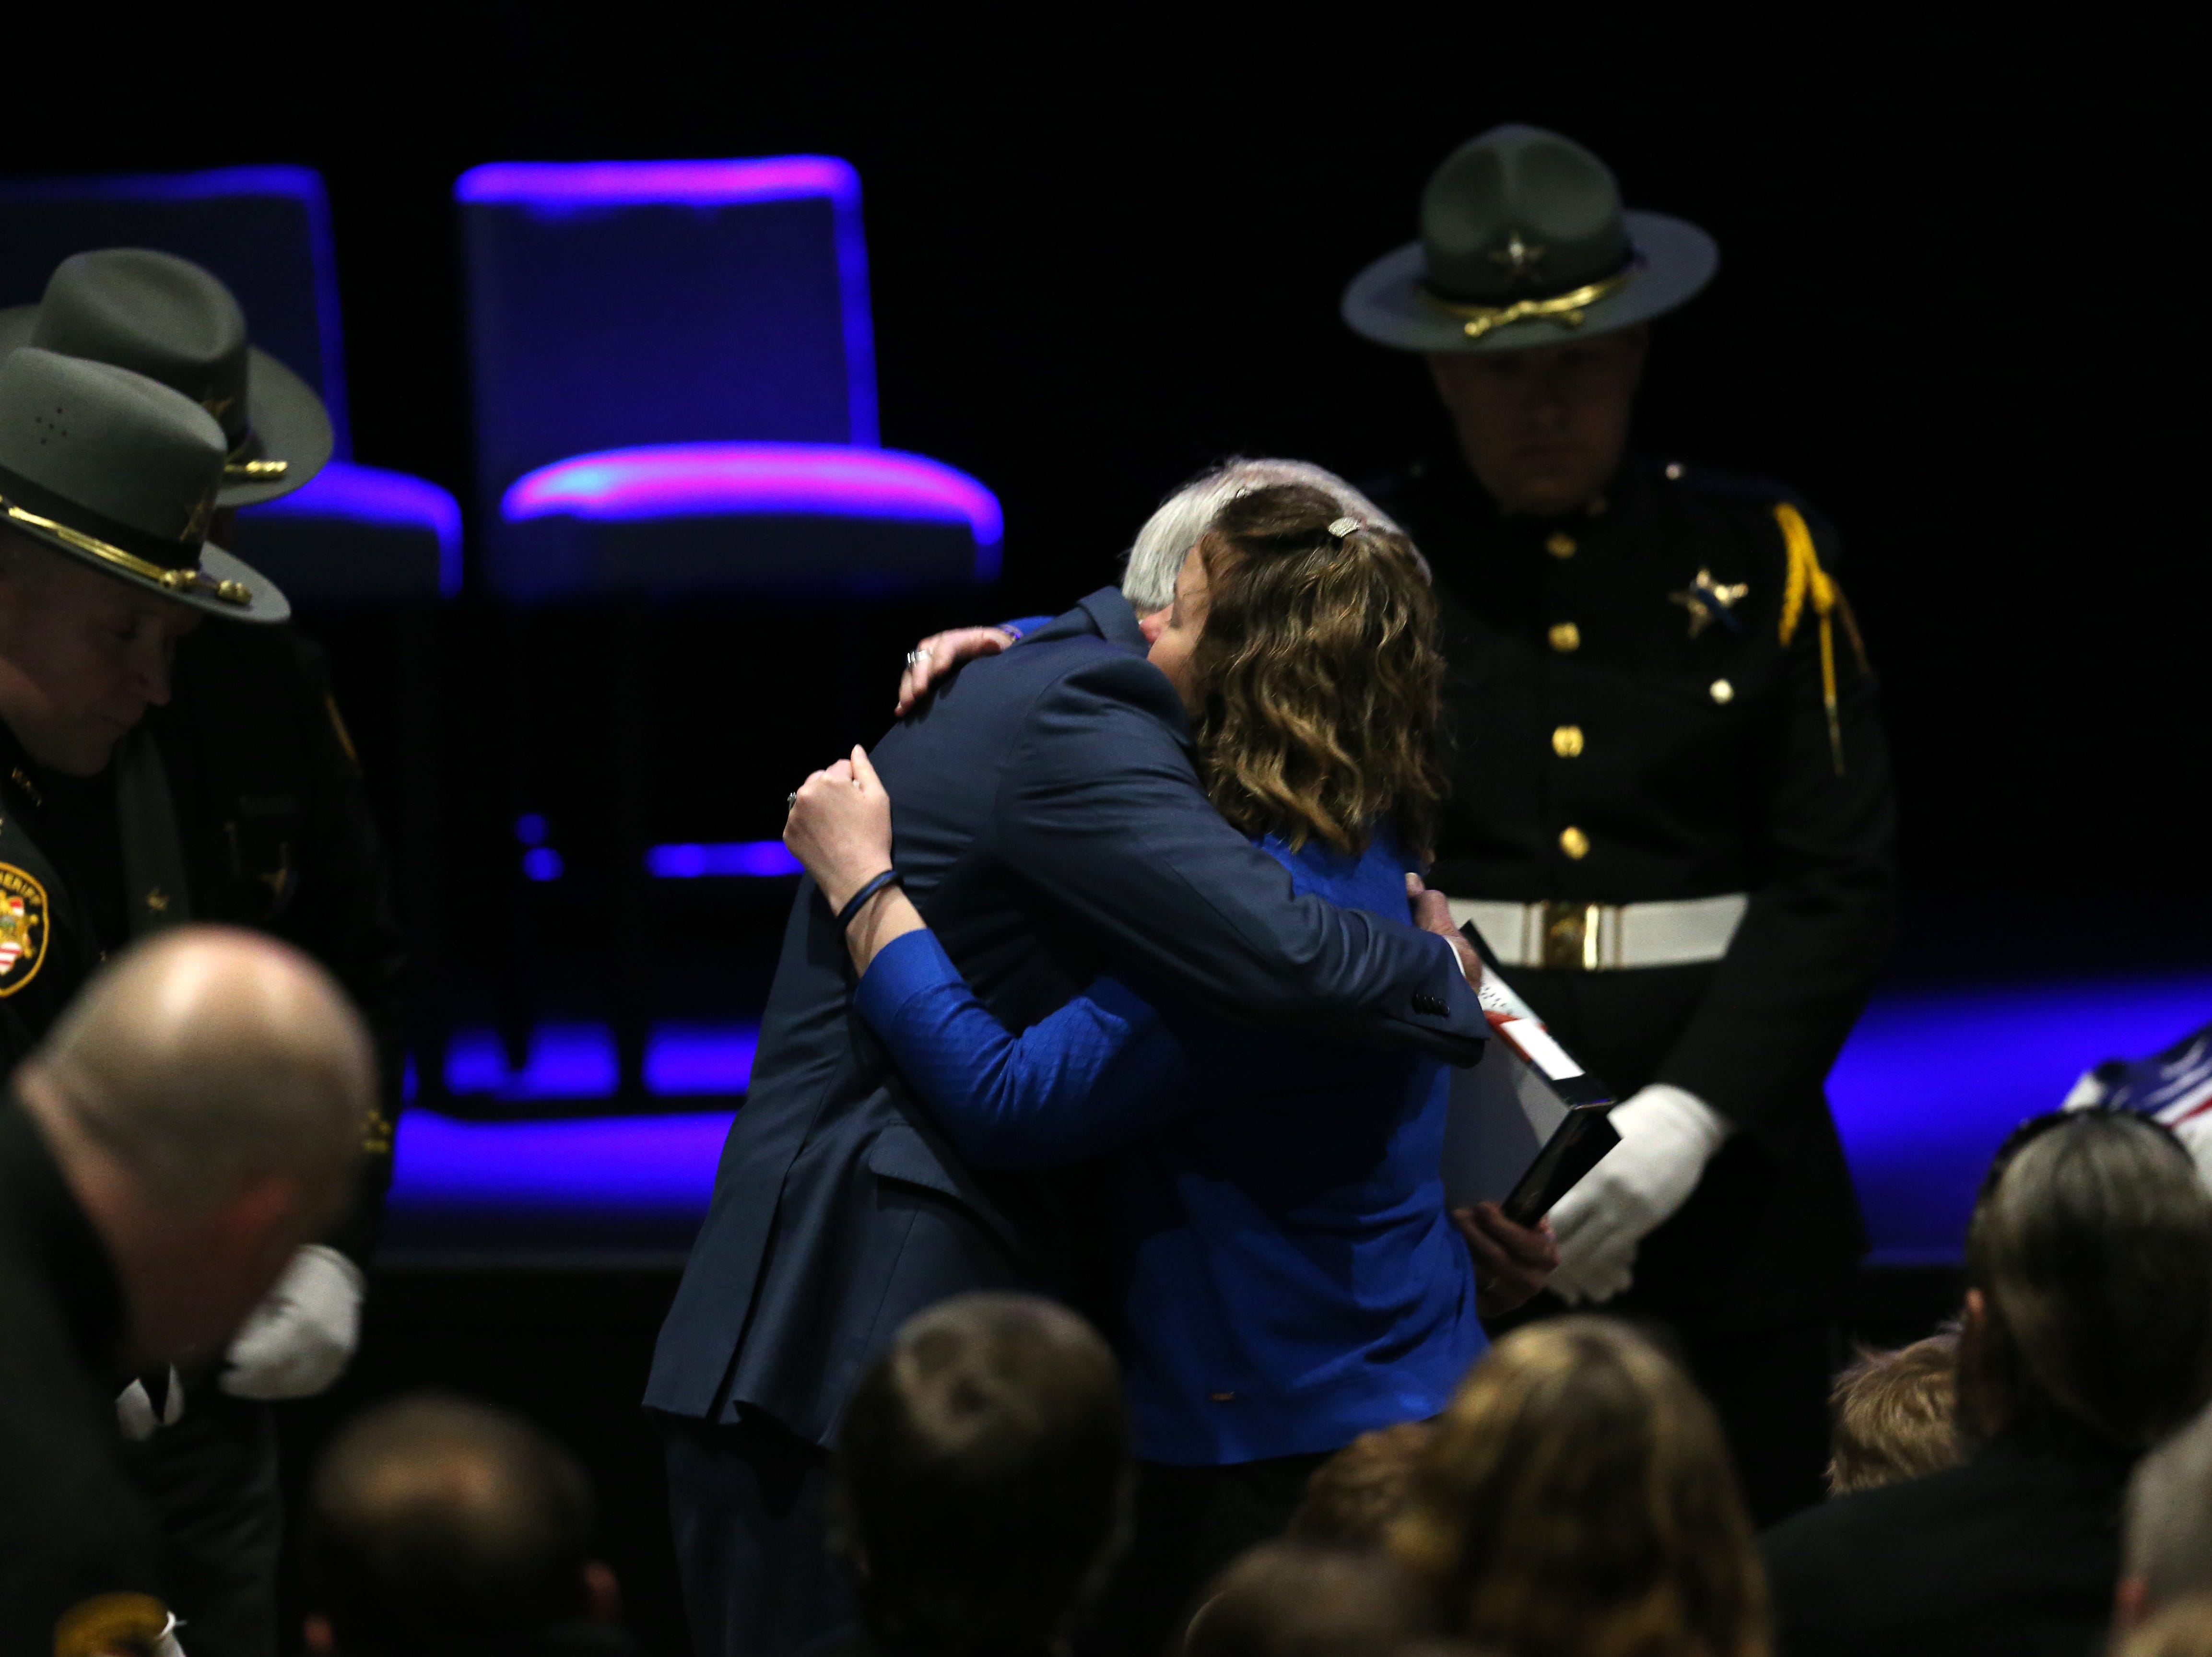 U.S. Sen. Rob Portman embraces Jamie Brewer, widow of fallen Clermont County Sheriff's Detective William Lee Brewer Jr. during funeral services, Friday, Feb. 8, 2019, at Mount Carmel Christian Church in Union Township, Ohio. Brewer, a 20-year veteran of the Clermont County SheriffÕs Office, died in the line of duty. He was shot Feb. 2 during a standoff. Brewer, 42, of Pierce Township, is survived by his wife, Jamie, and a 5-year-old son, Braxton. (Kareem Elgazzar/The Cincinnati Enquirer)